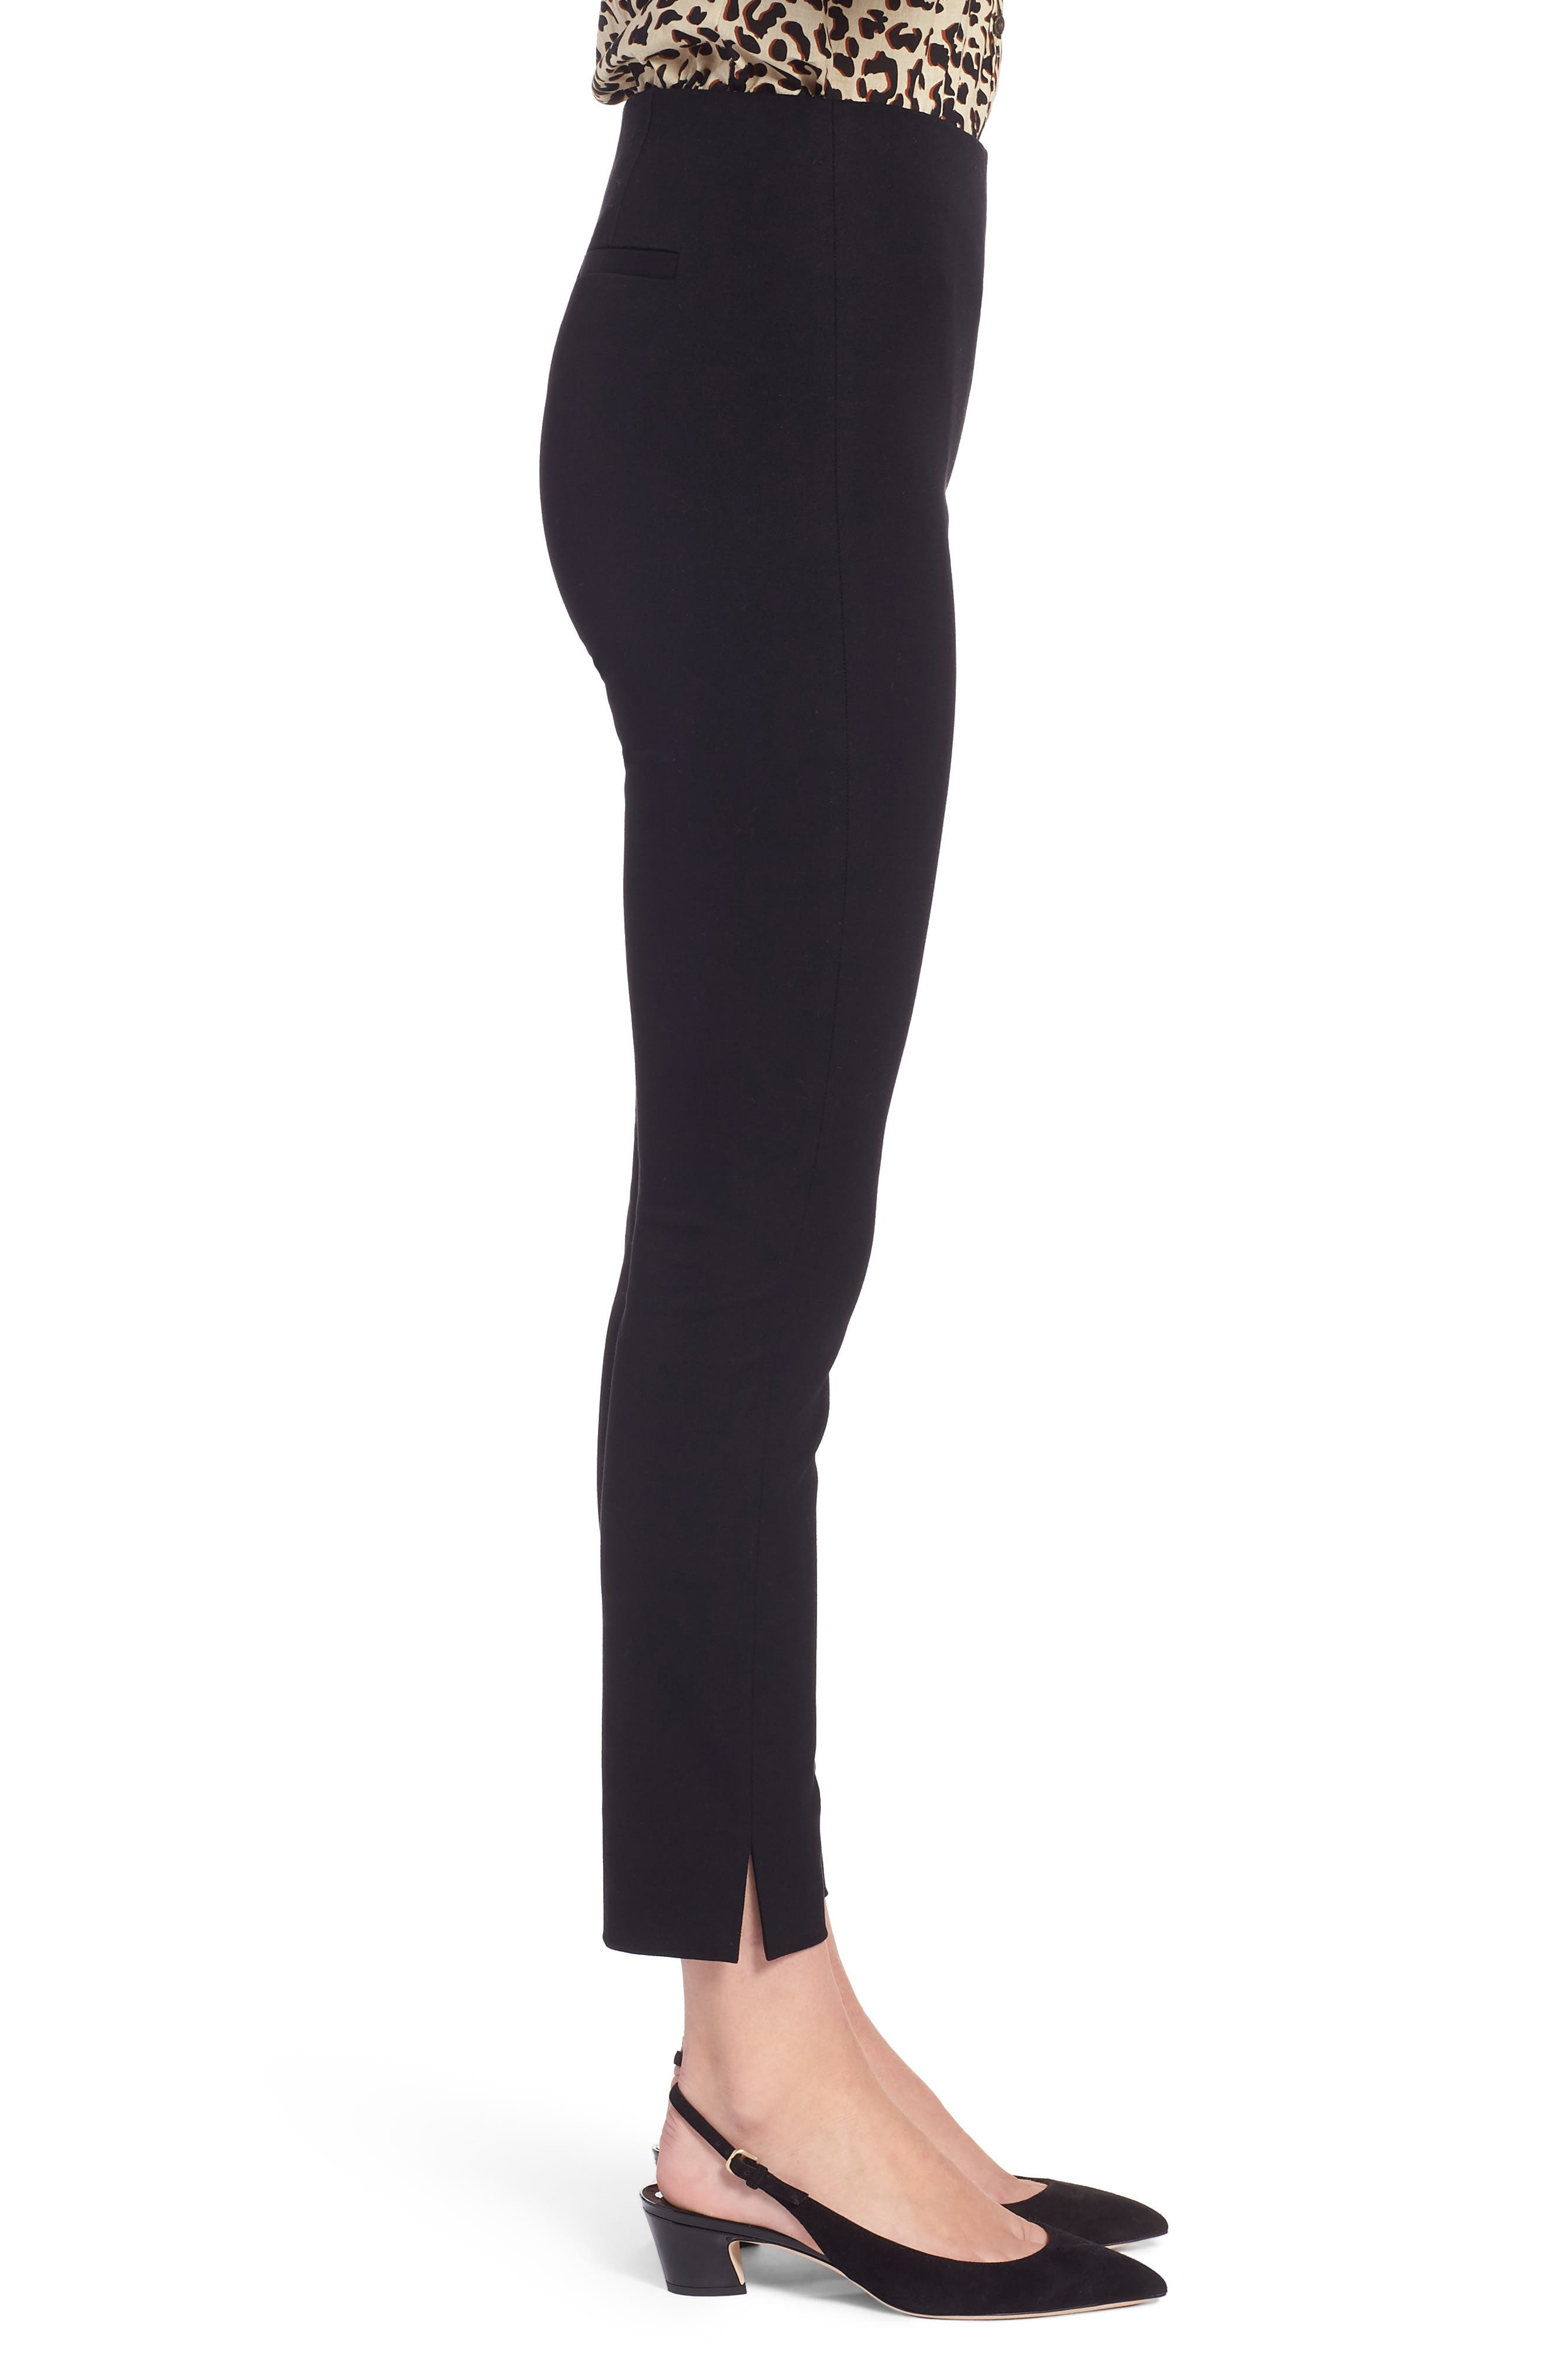 Skinny Stretch Pants,                             Alternate thumbnail 3, color,                             001